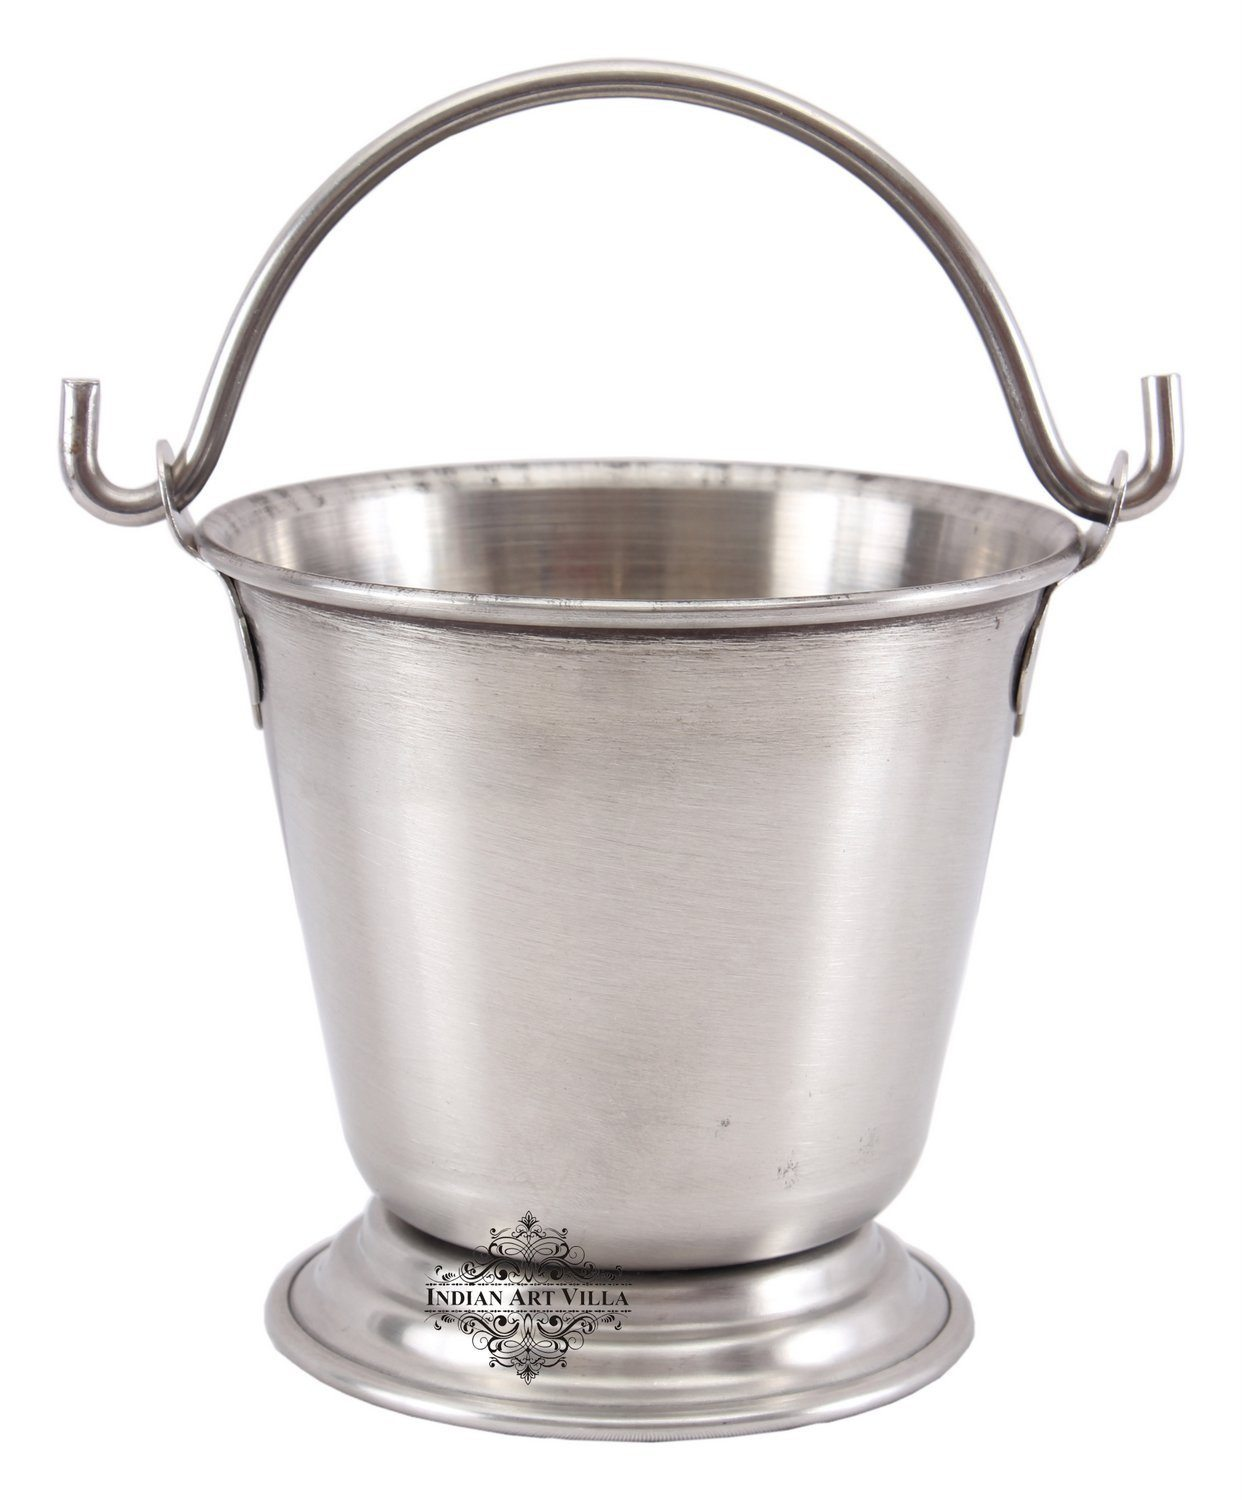 Steel Serving Double Layer Bucket Serving Vegetable Rayta Dishes